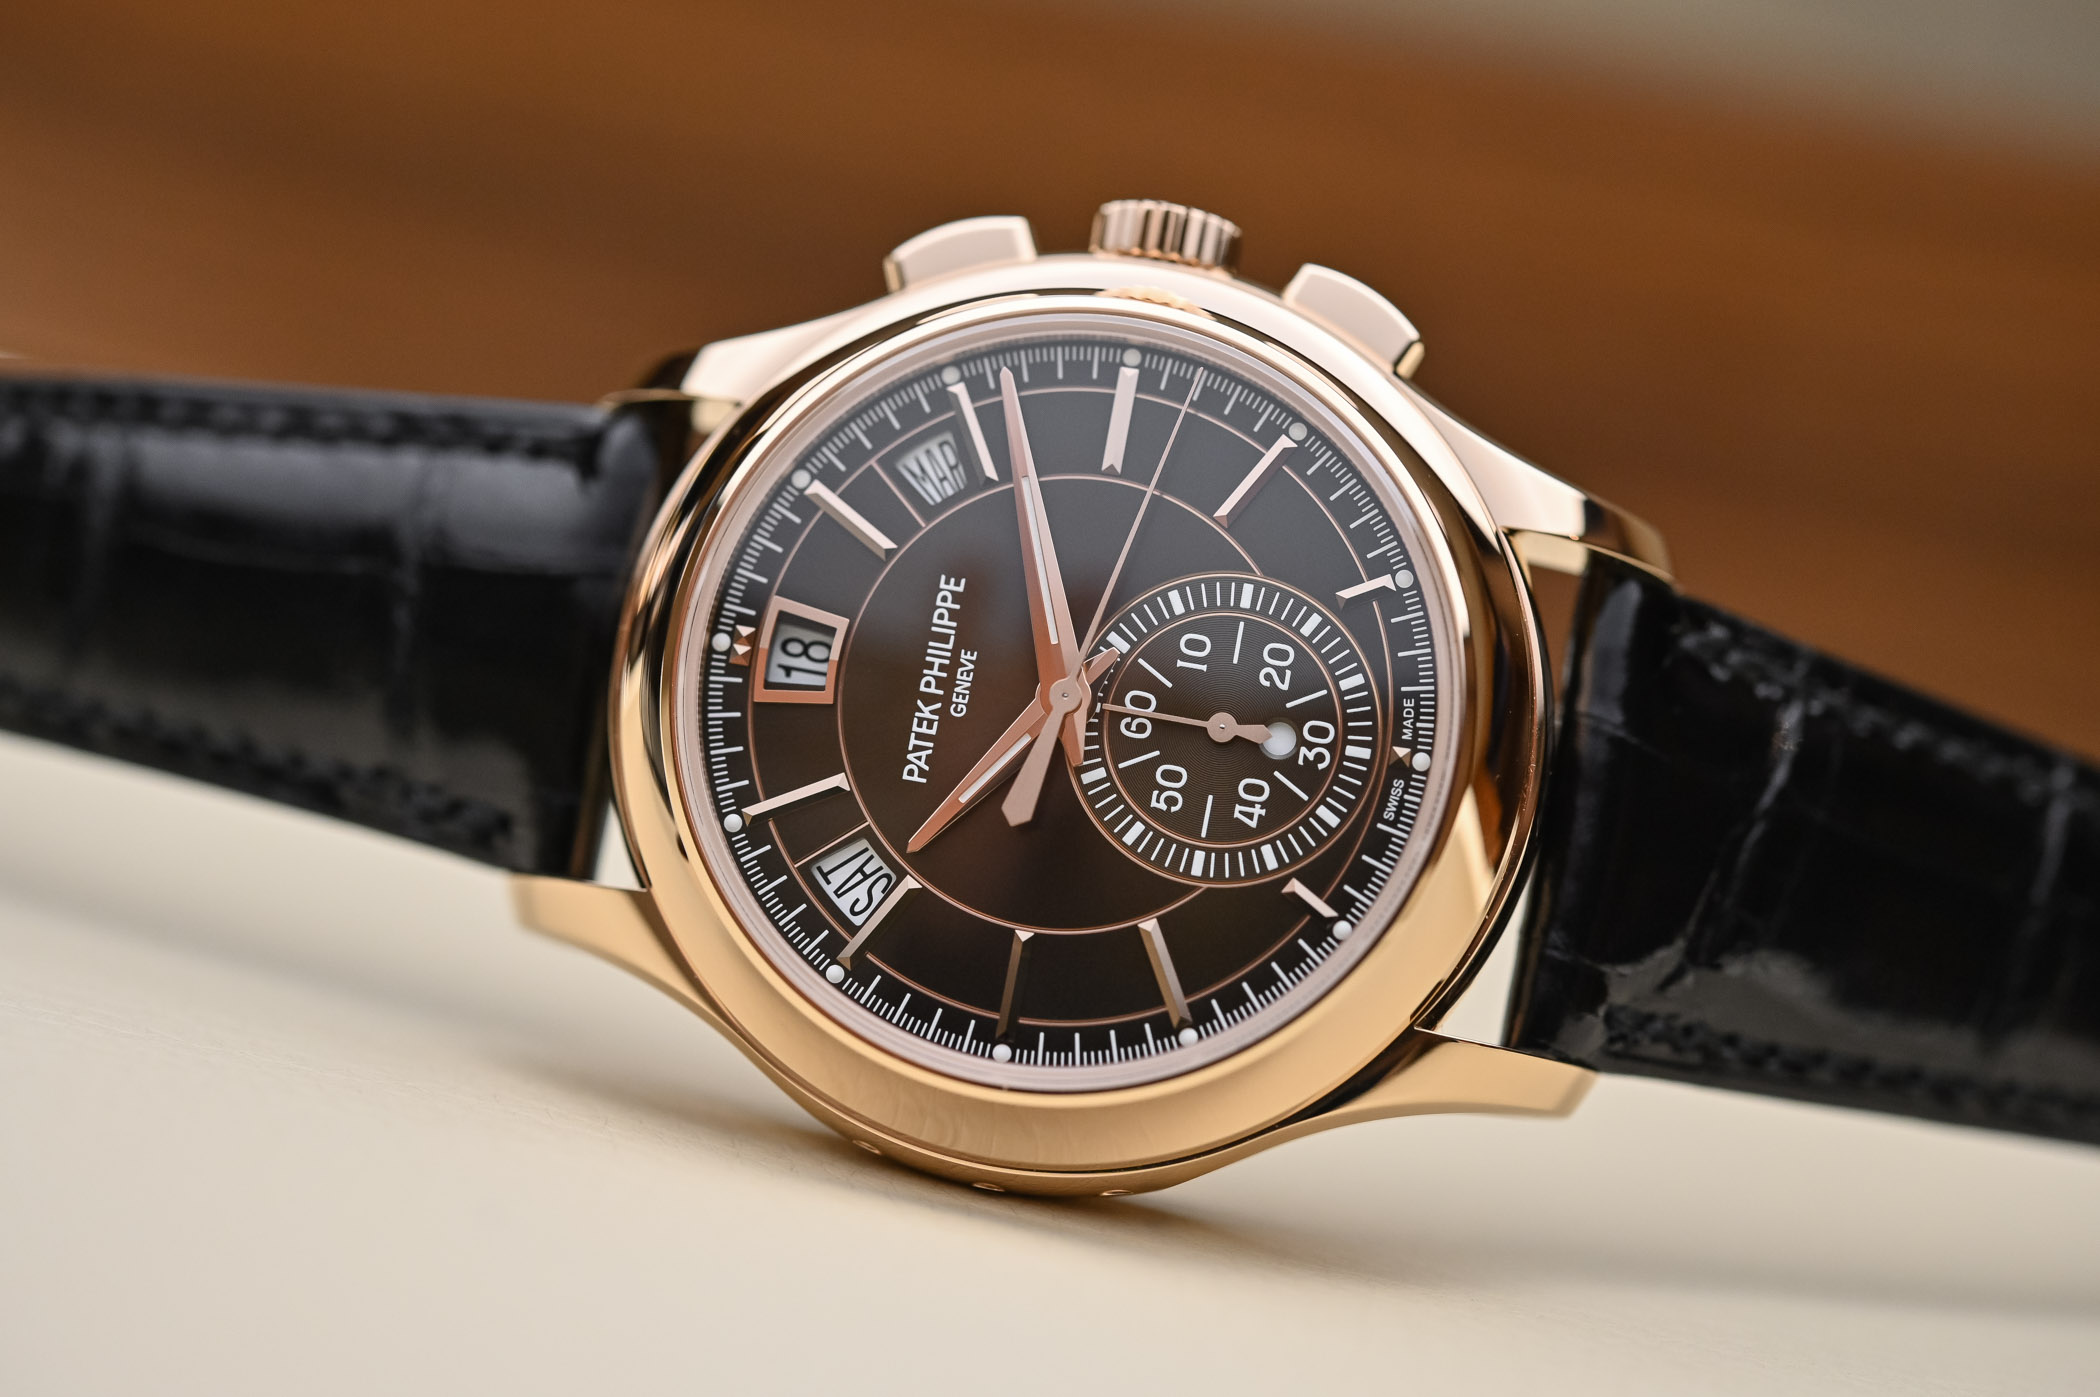 Patek Philippe Chronograph Annual Calendar 5905R-001 Pink Gold Brown Dial